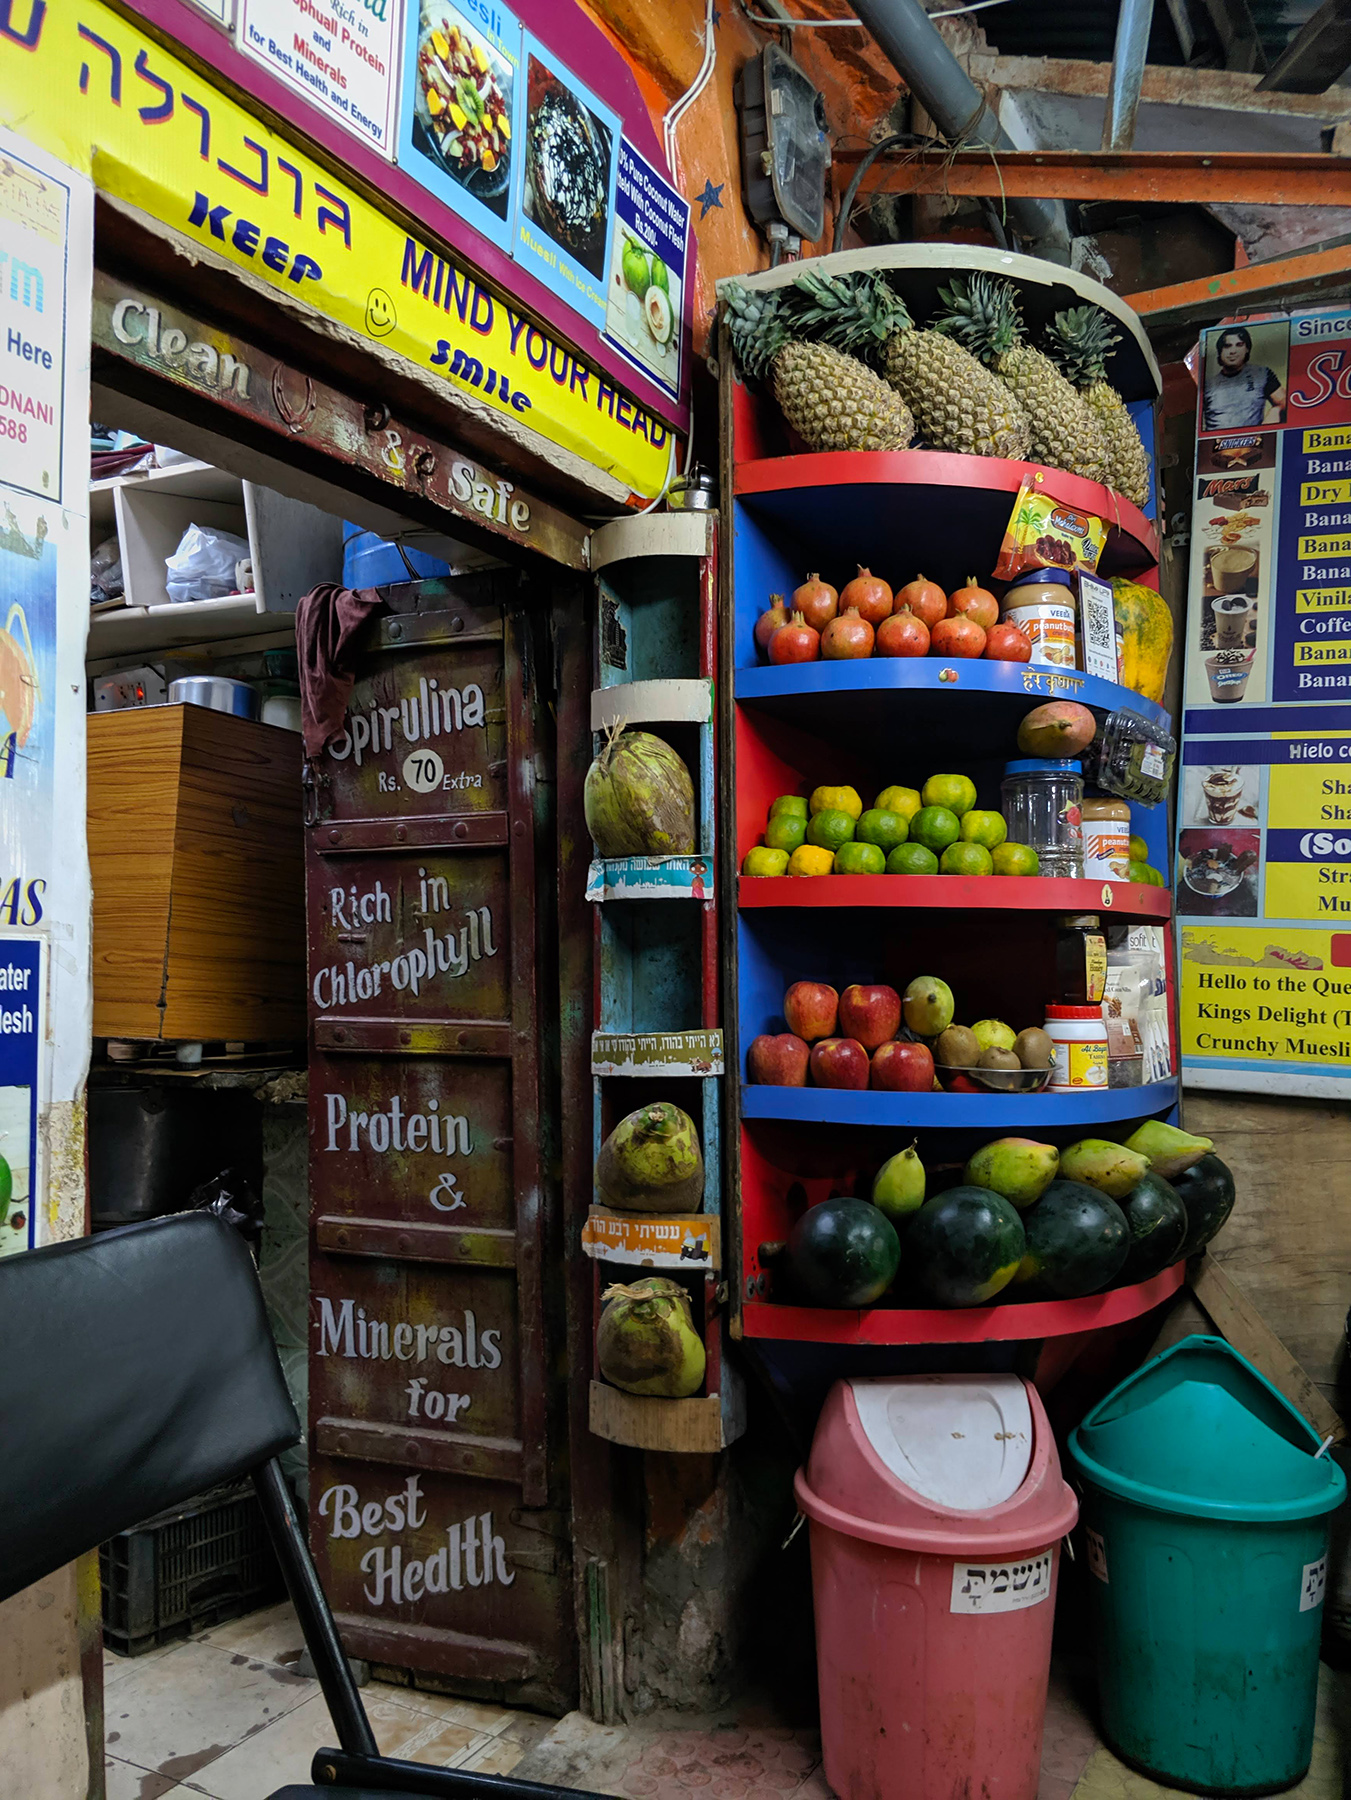 The fruit juice stand